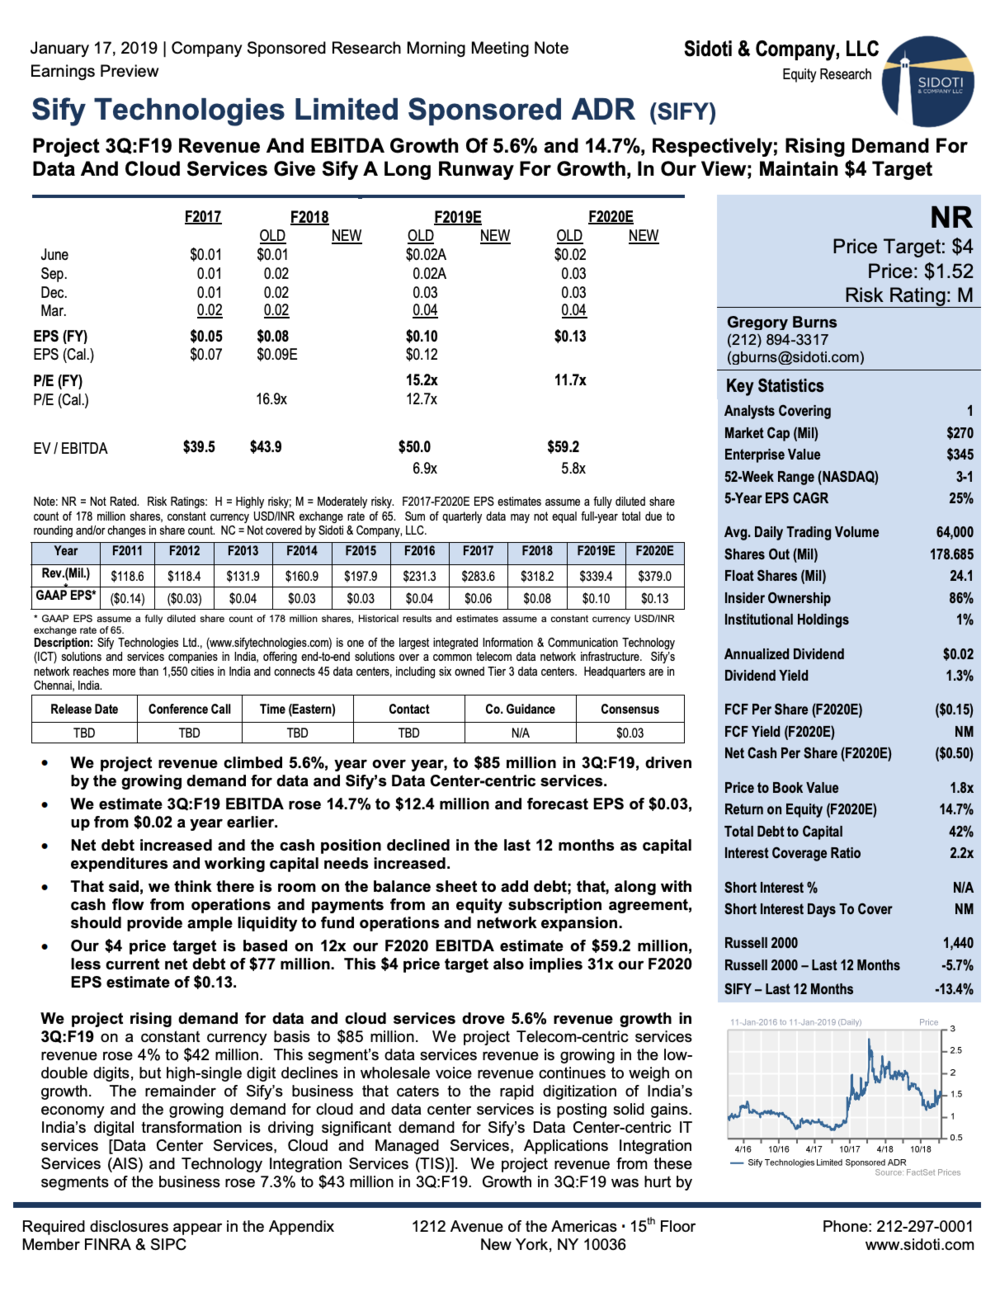 Earnings Preview: January 17, 2019